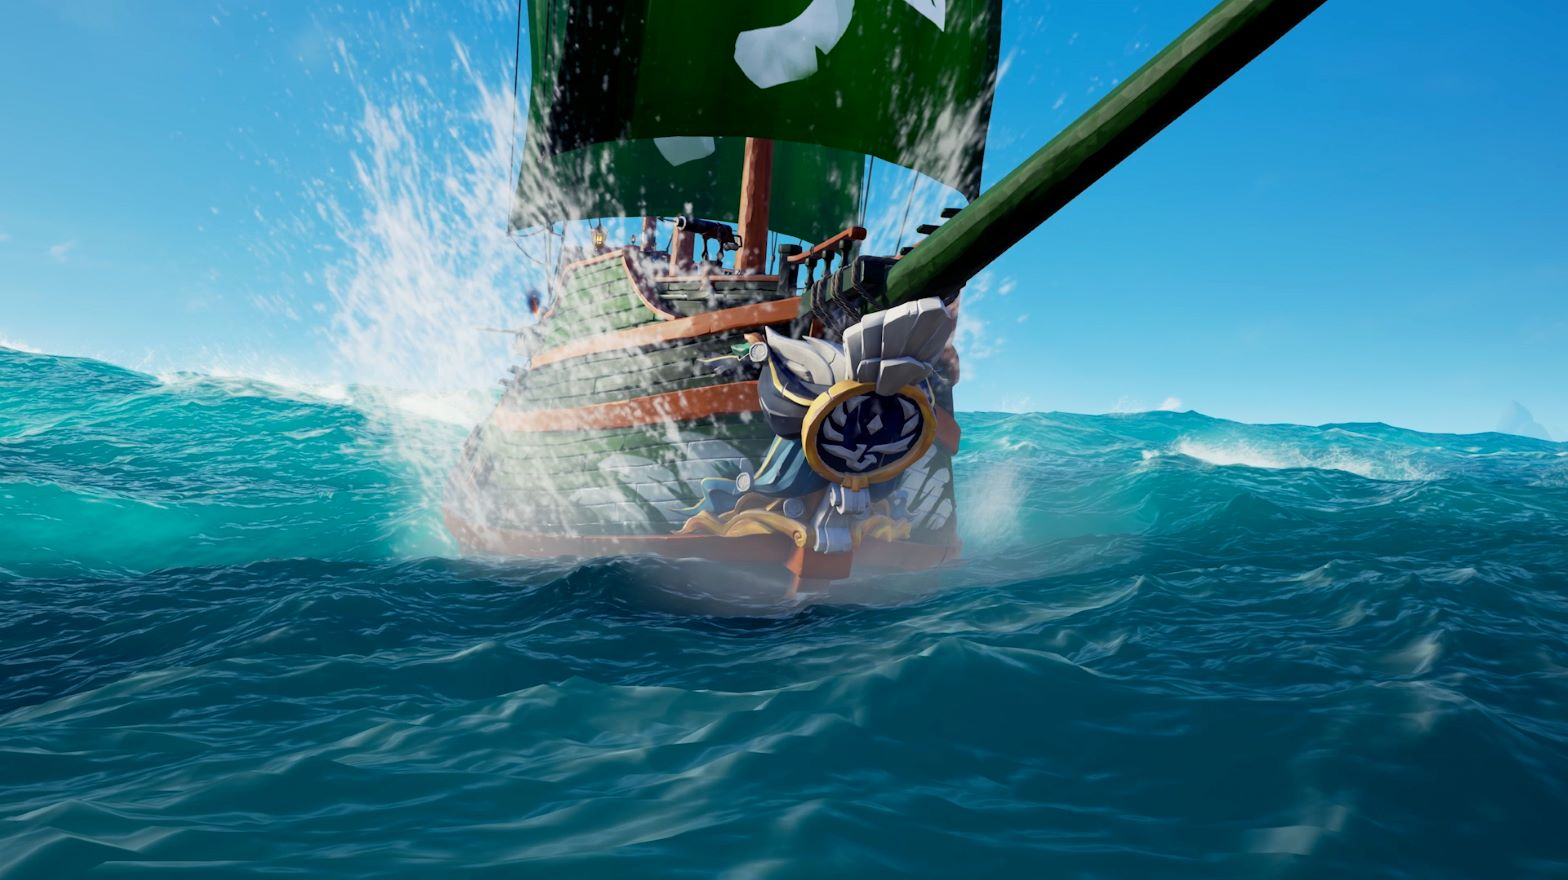 Sea of Thieves gameplay screenshot featuring a boat on the openseas.